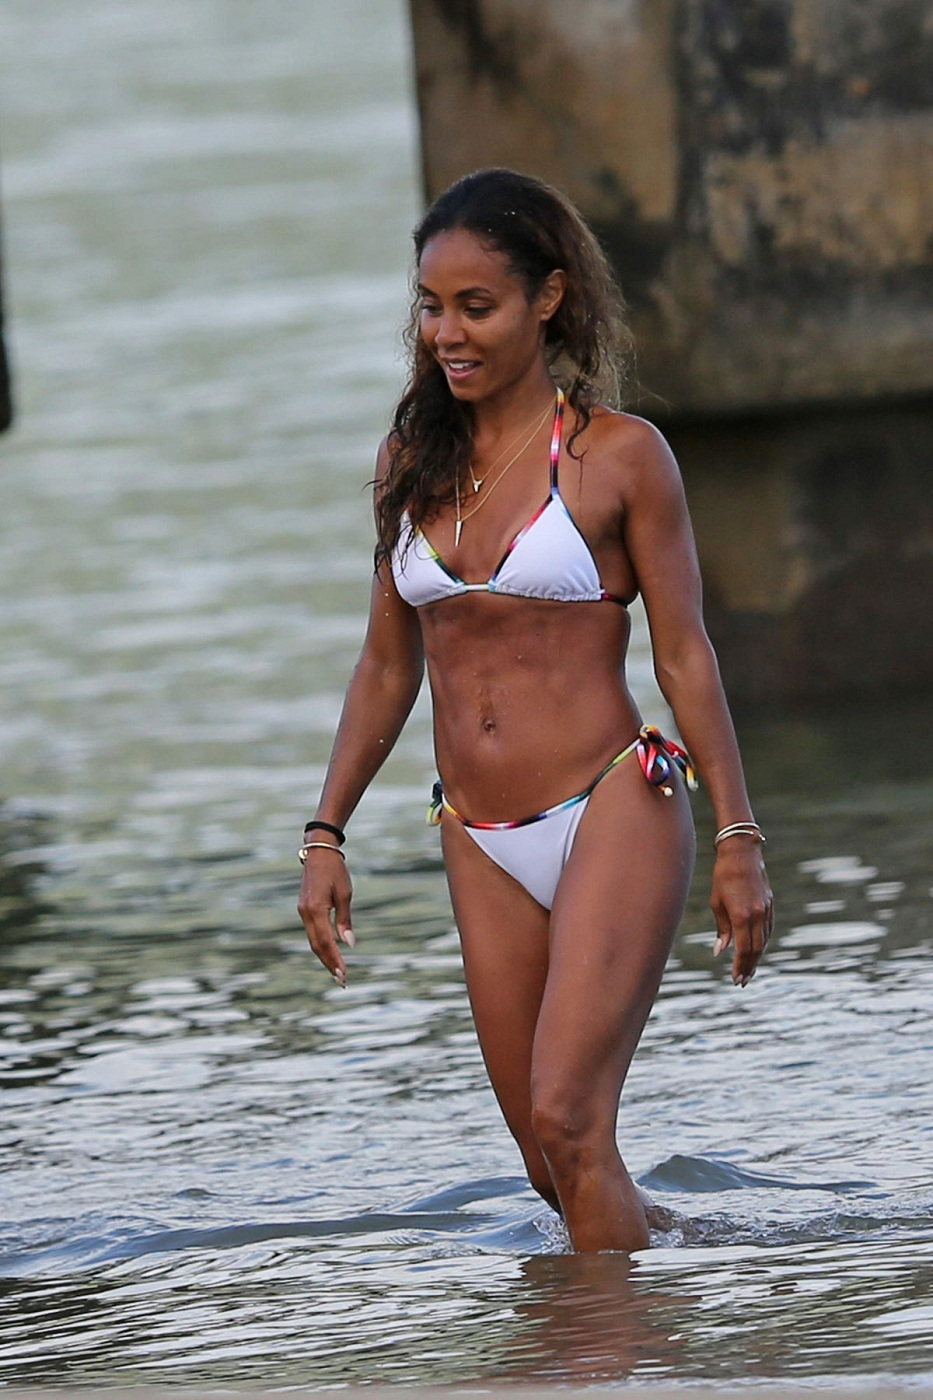 JADA-PINKETT-SMITH-in-Bikini-at-a-Beach-in-Hawaii-6.jpg - 332.43 KB